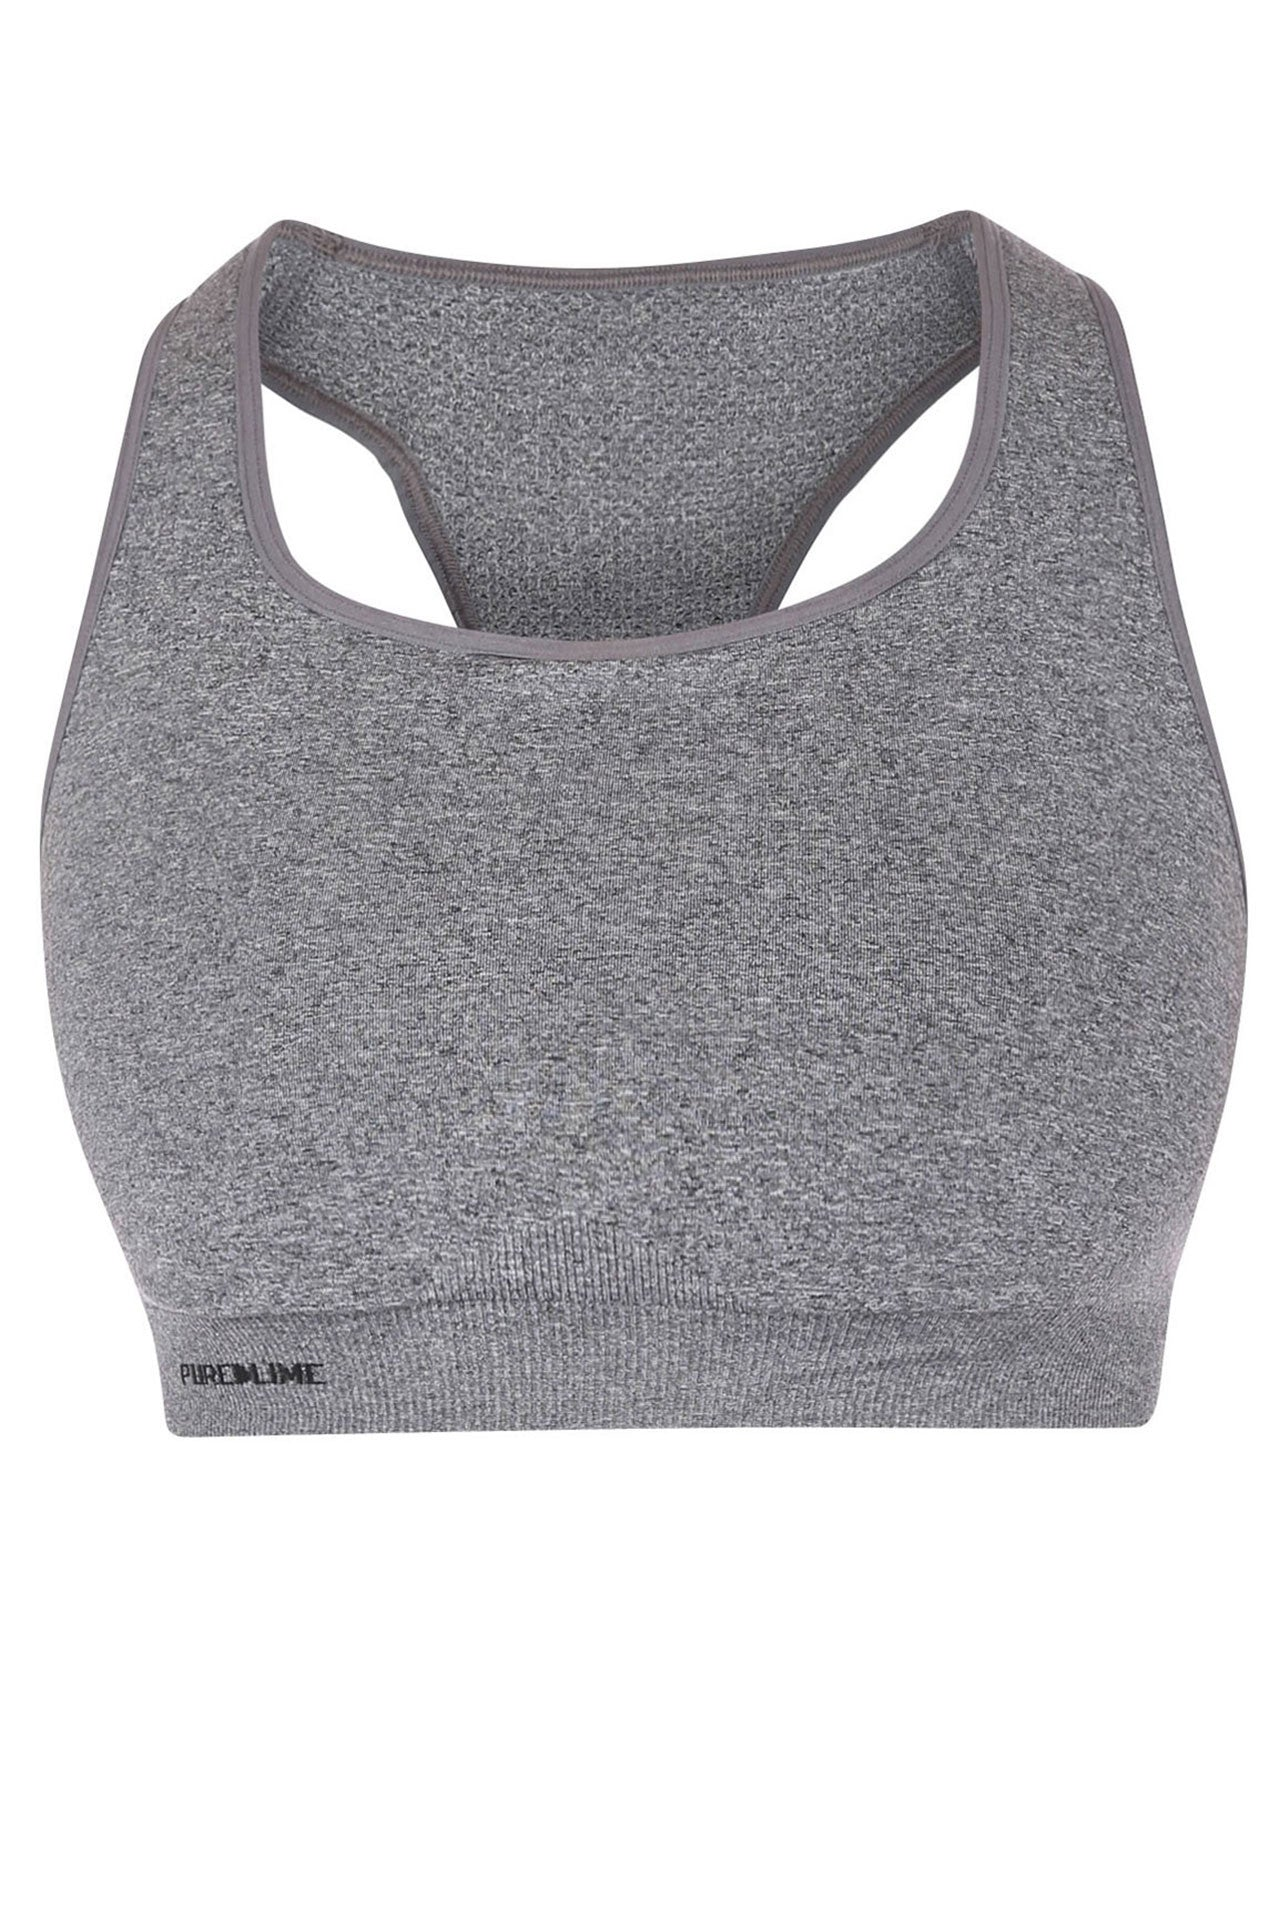 Pure Lime Seamless Bra - Charcoal - Sculptique